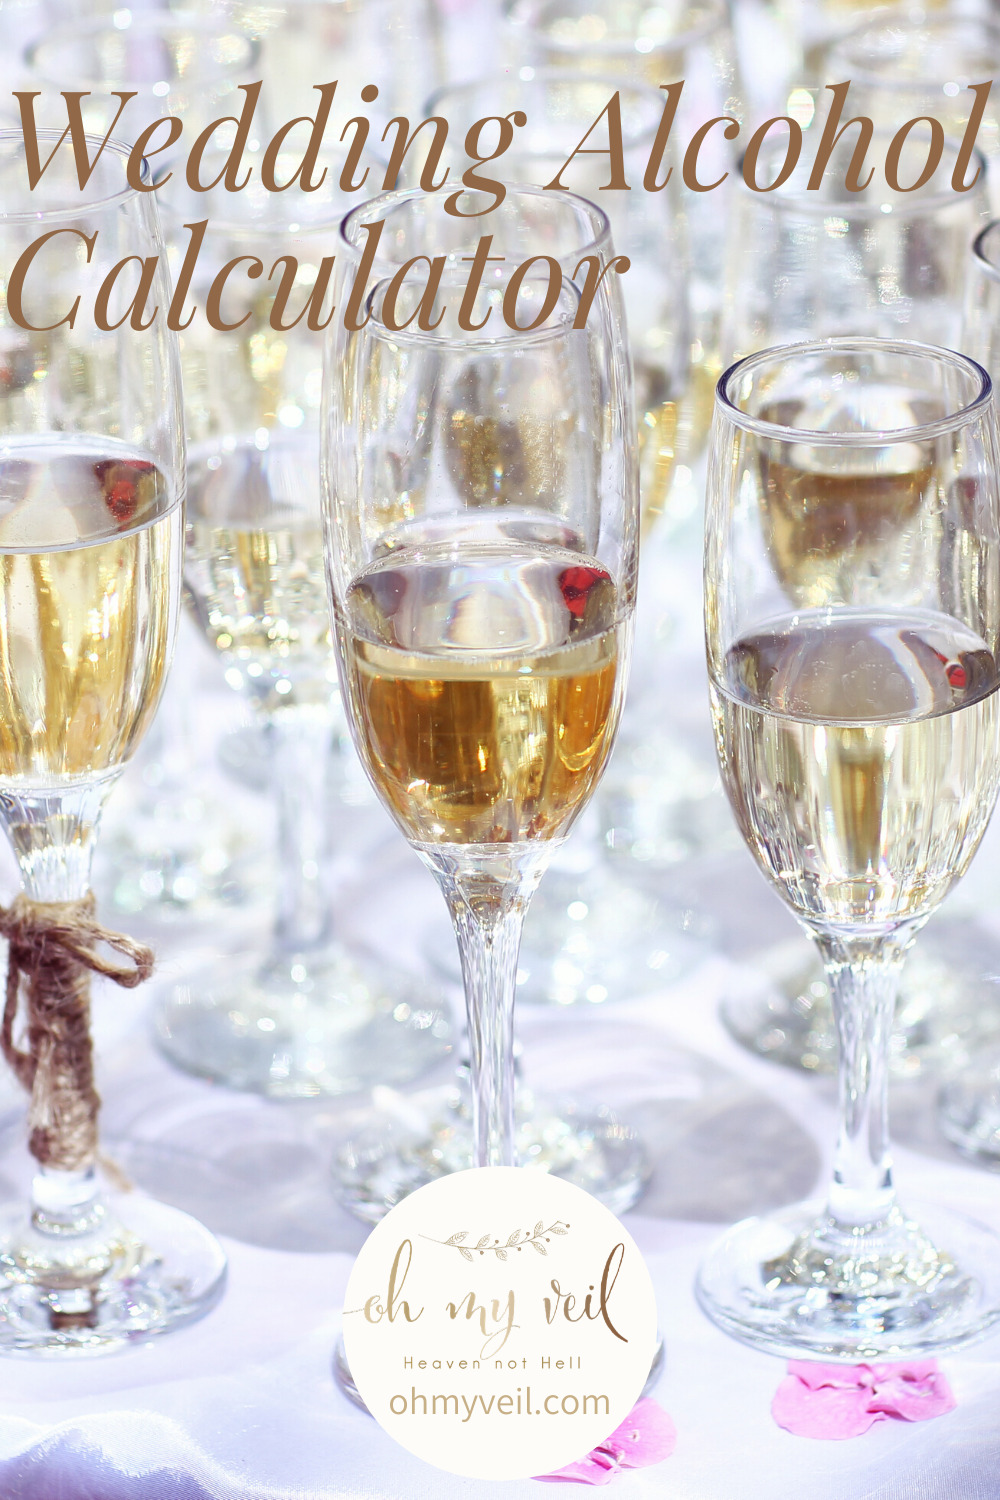 There are a lot of things to consider for a wedding reception. Alcohol for the guests is a big one. Don't worry, we have done the calculations for you. Use this wedding alcohol calculator so you don't run short on the booze. #weddingalcoholcalculator